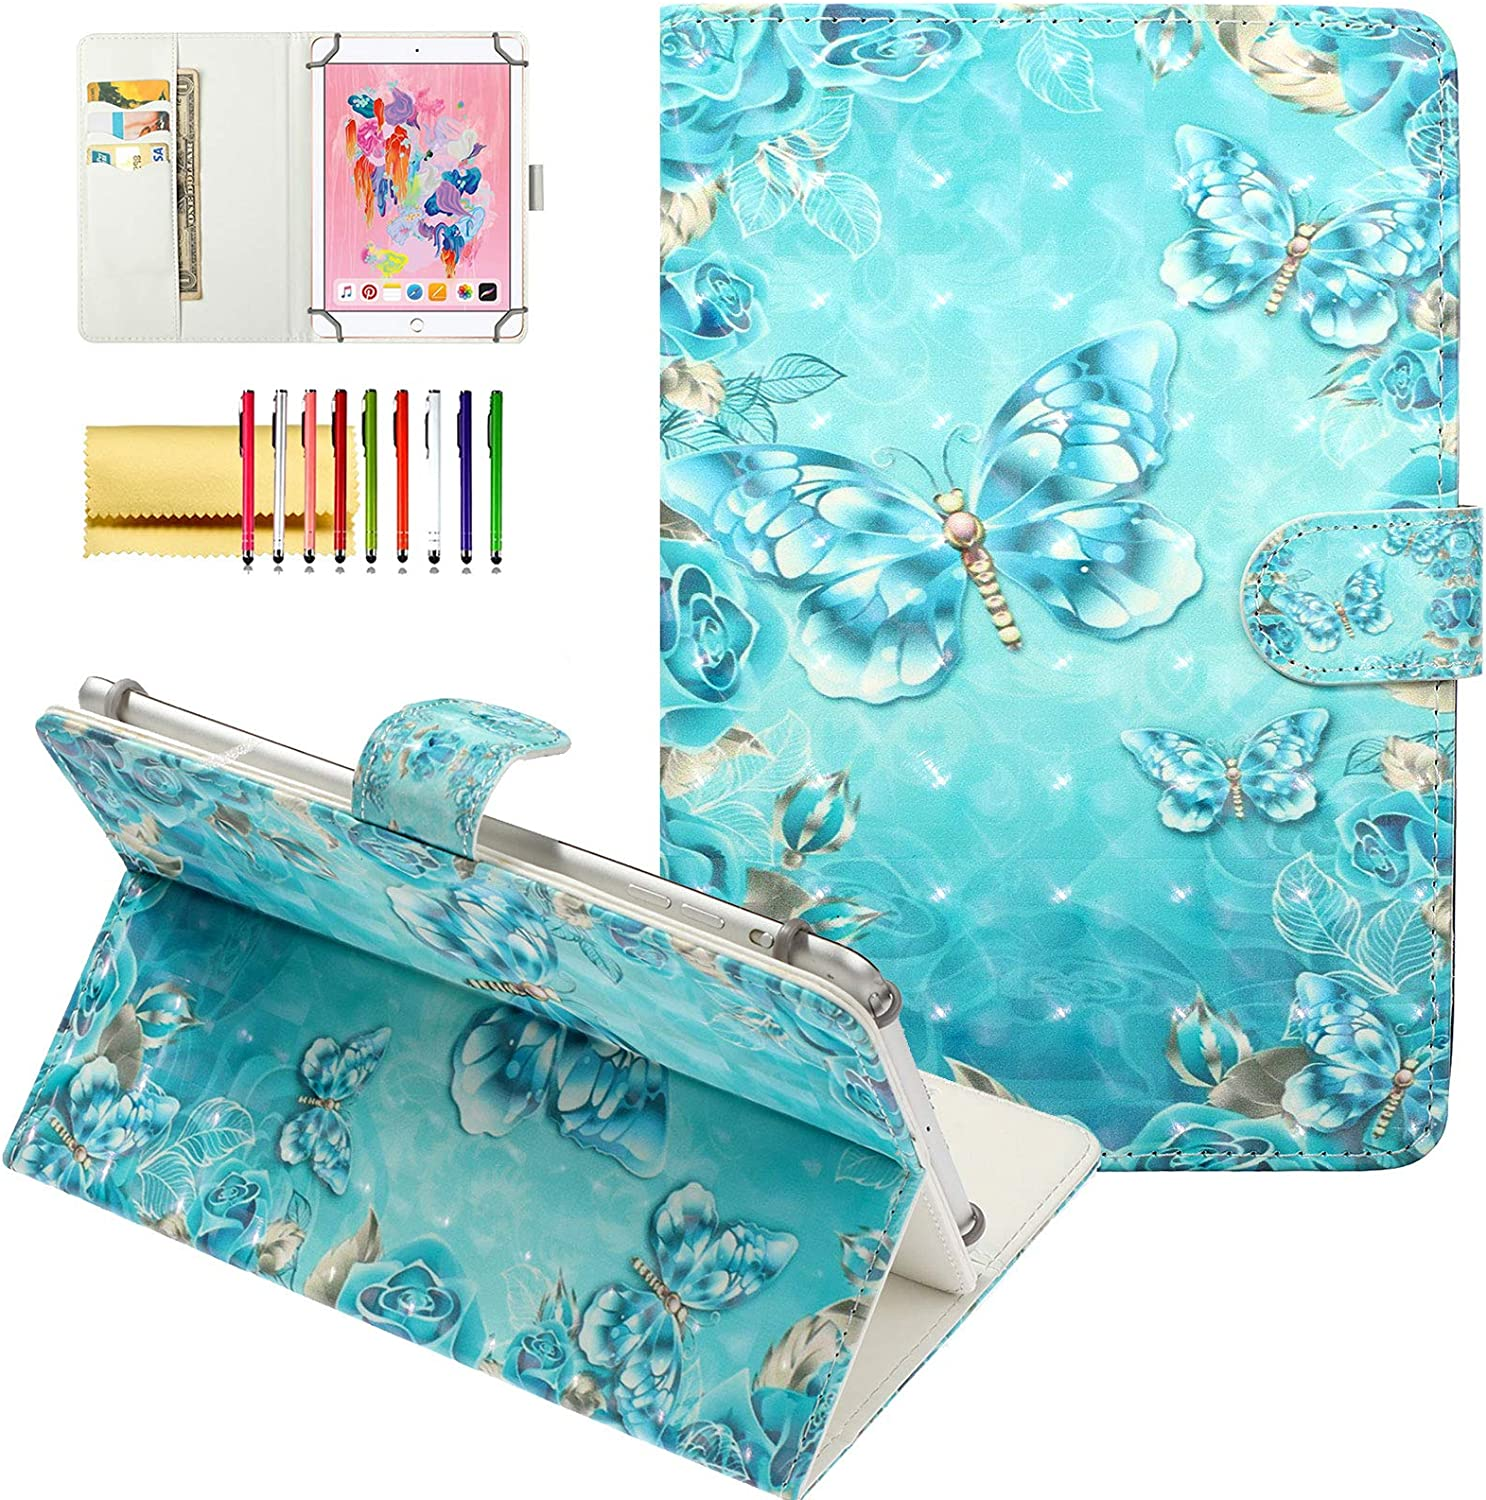 "Techcircle Universal Folio Case for 10 inch Tablet, Slim Lightweight Magnet Stand Cover [Card/Money Slots] for iPad 9.7"", Galaxy/Lenovo Tab and More 9.5""-10.5"" Touchscreen Tablet, Blue Butterflies"